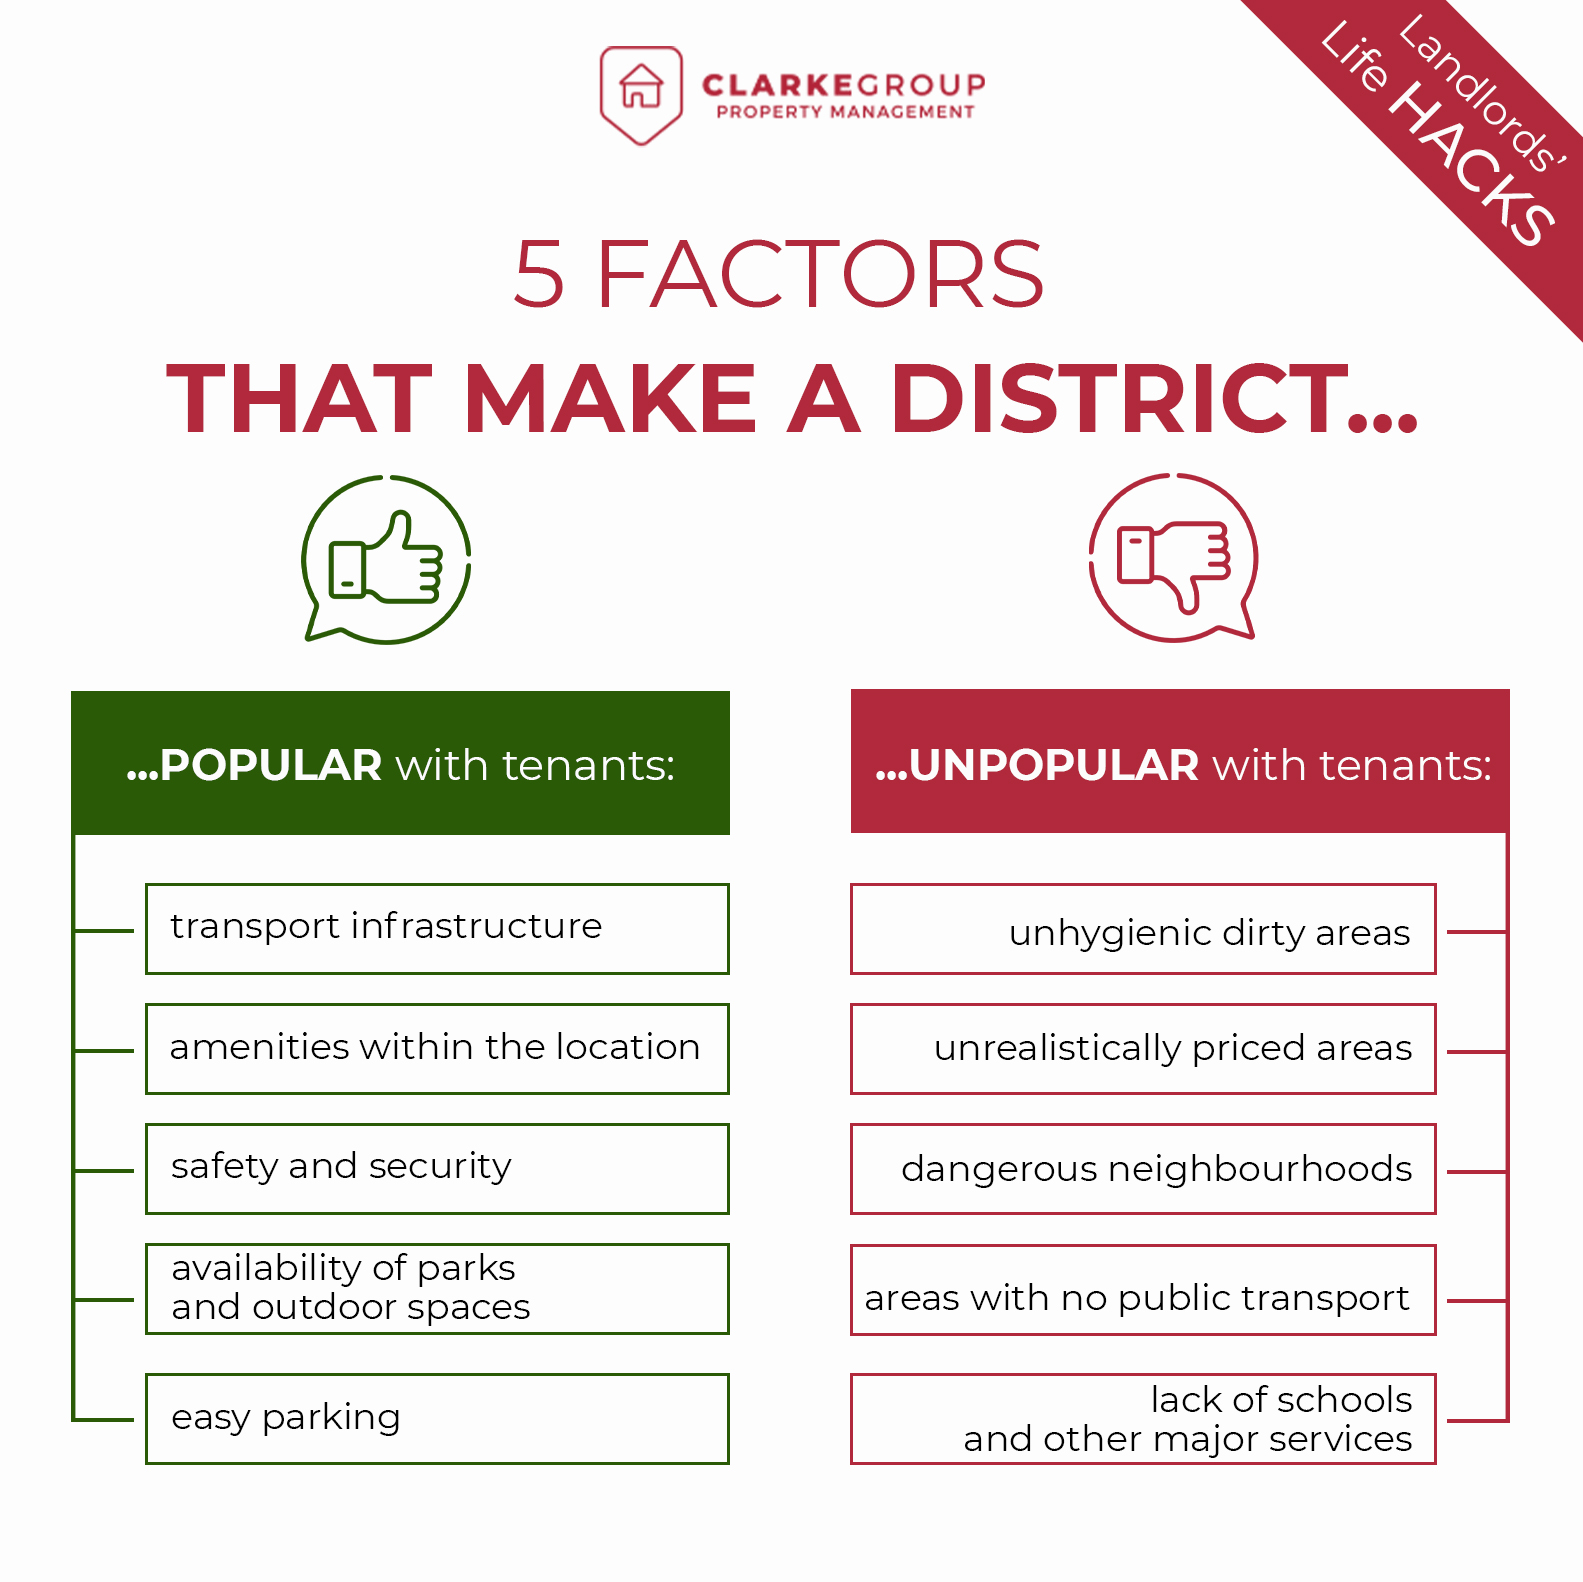 Infographic enlisting factors that make a district popular and unpopular with tenants